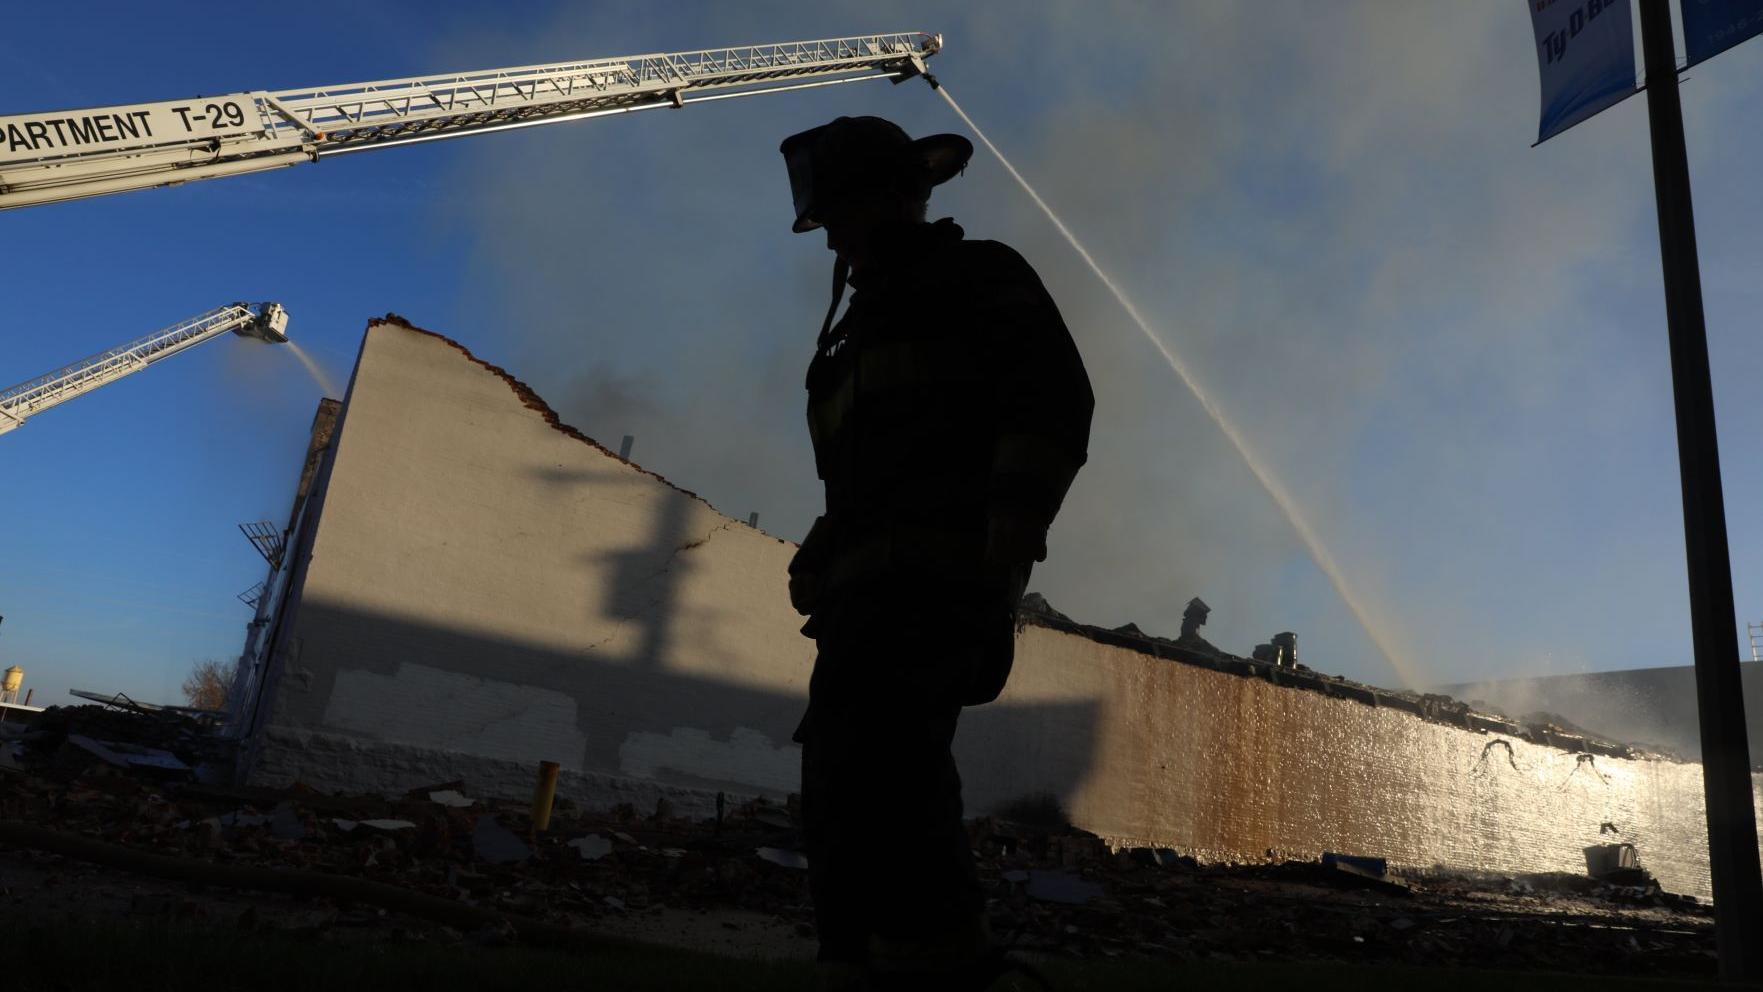 After loss of 200,000 books in fire, St. Louis publisher to begin again